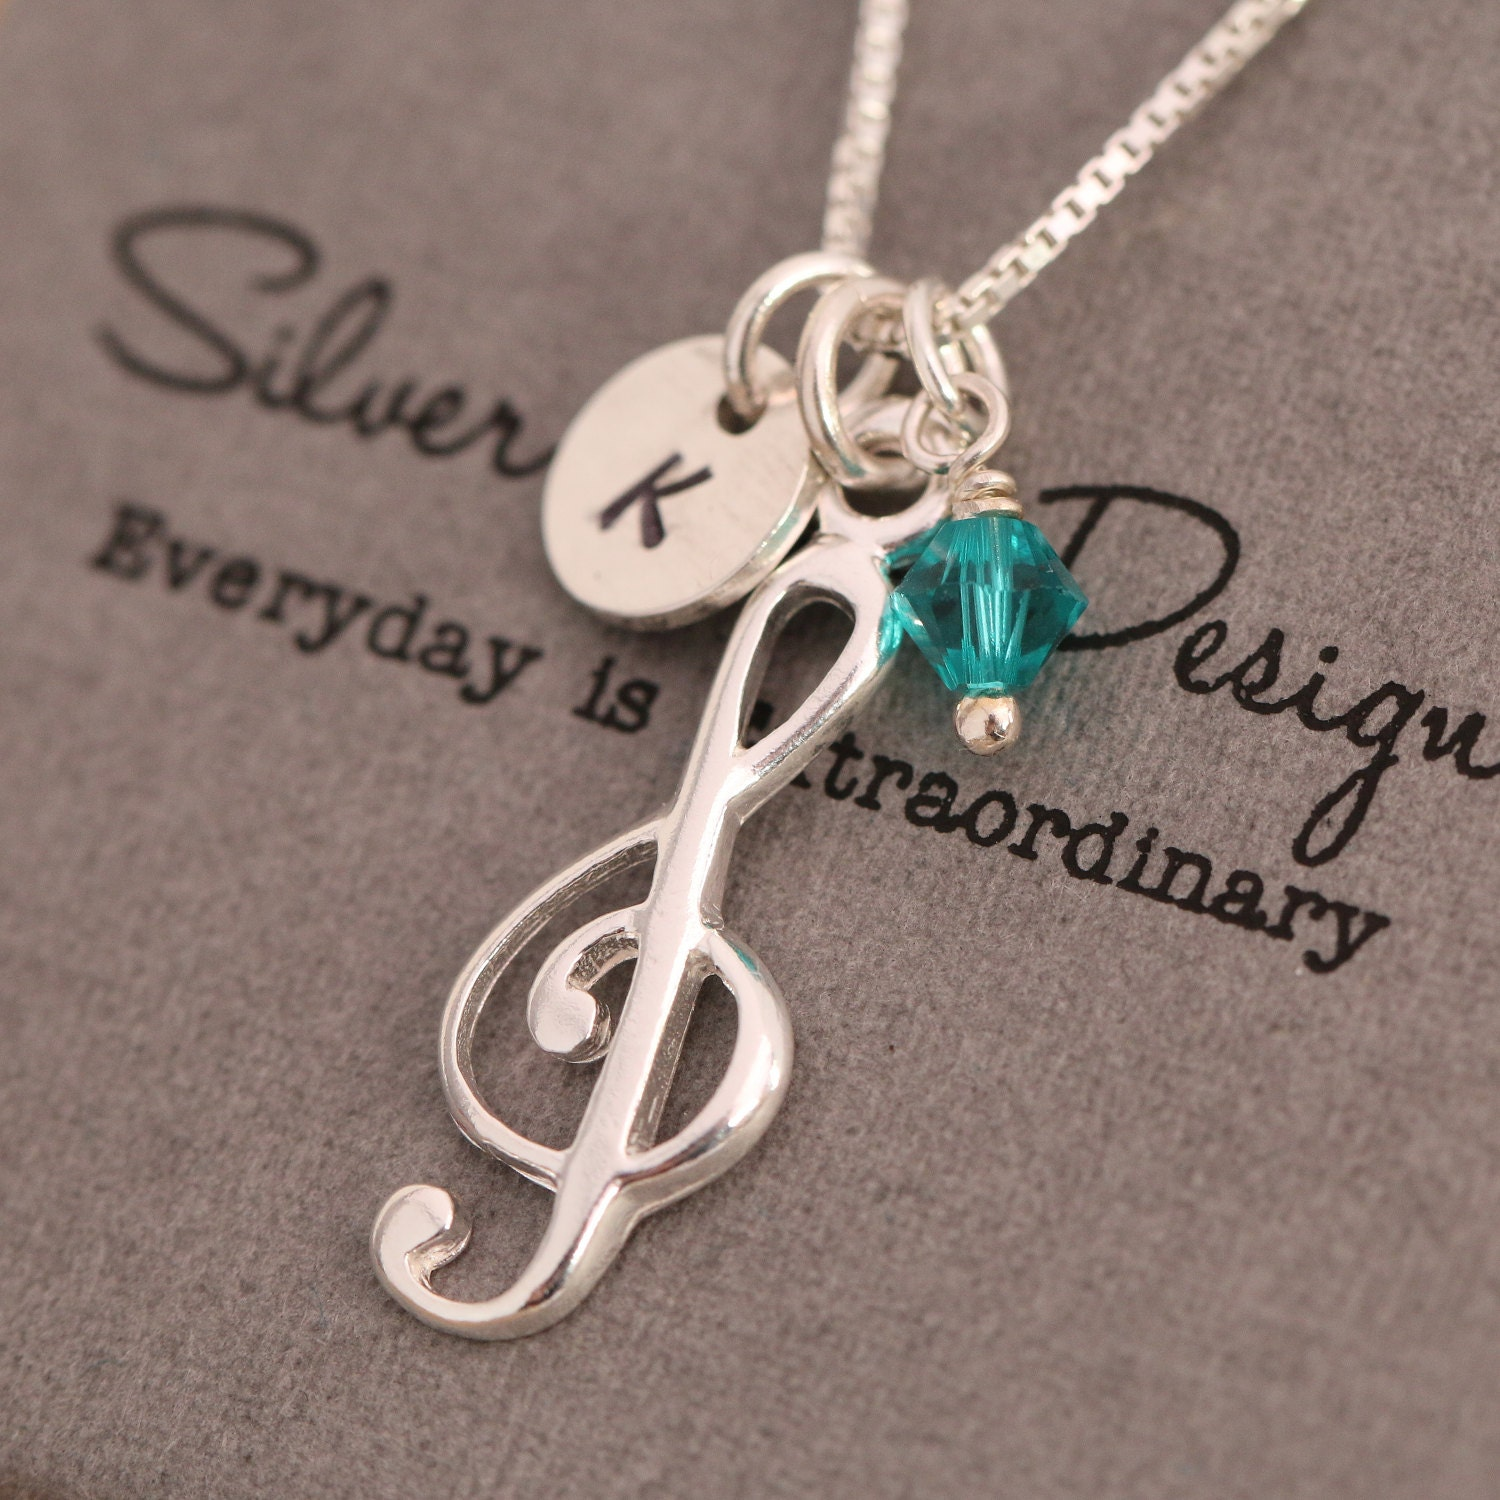 Bespoke Personalised Sterling Silver Personalized Treble Clef Pendant Necklace Birthday Present for Your Musician Friend with Gift Box